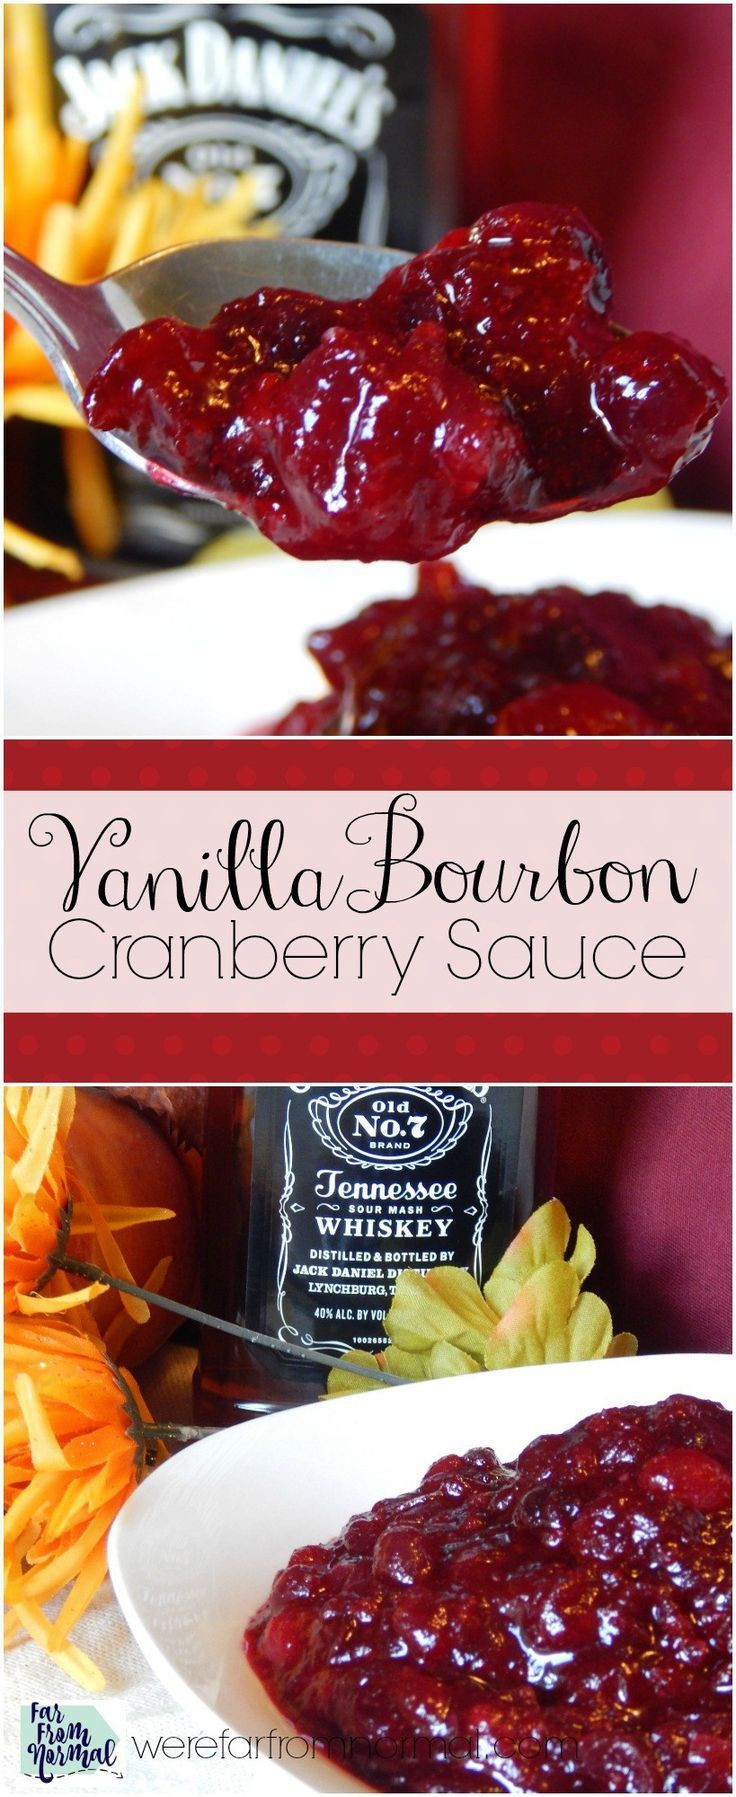 Cranberry Sauce Recipes For Thanksgiving  Vanilla Bourbon Cranberry Sauce